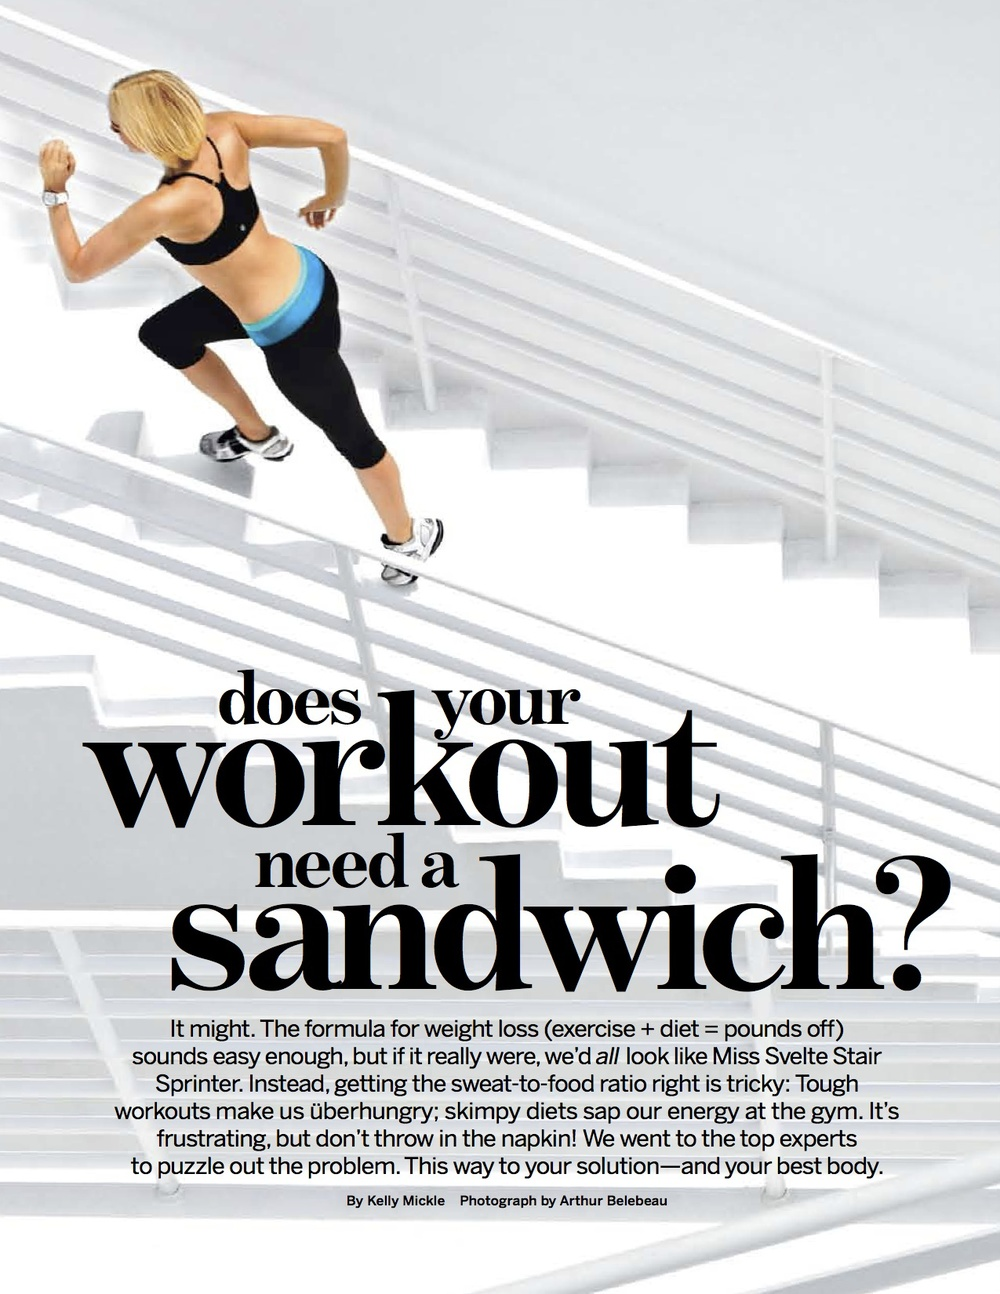 Does_Your_Workout_Need_A_Sandwich?.jpg